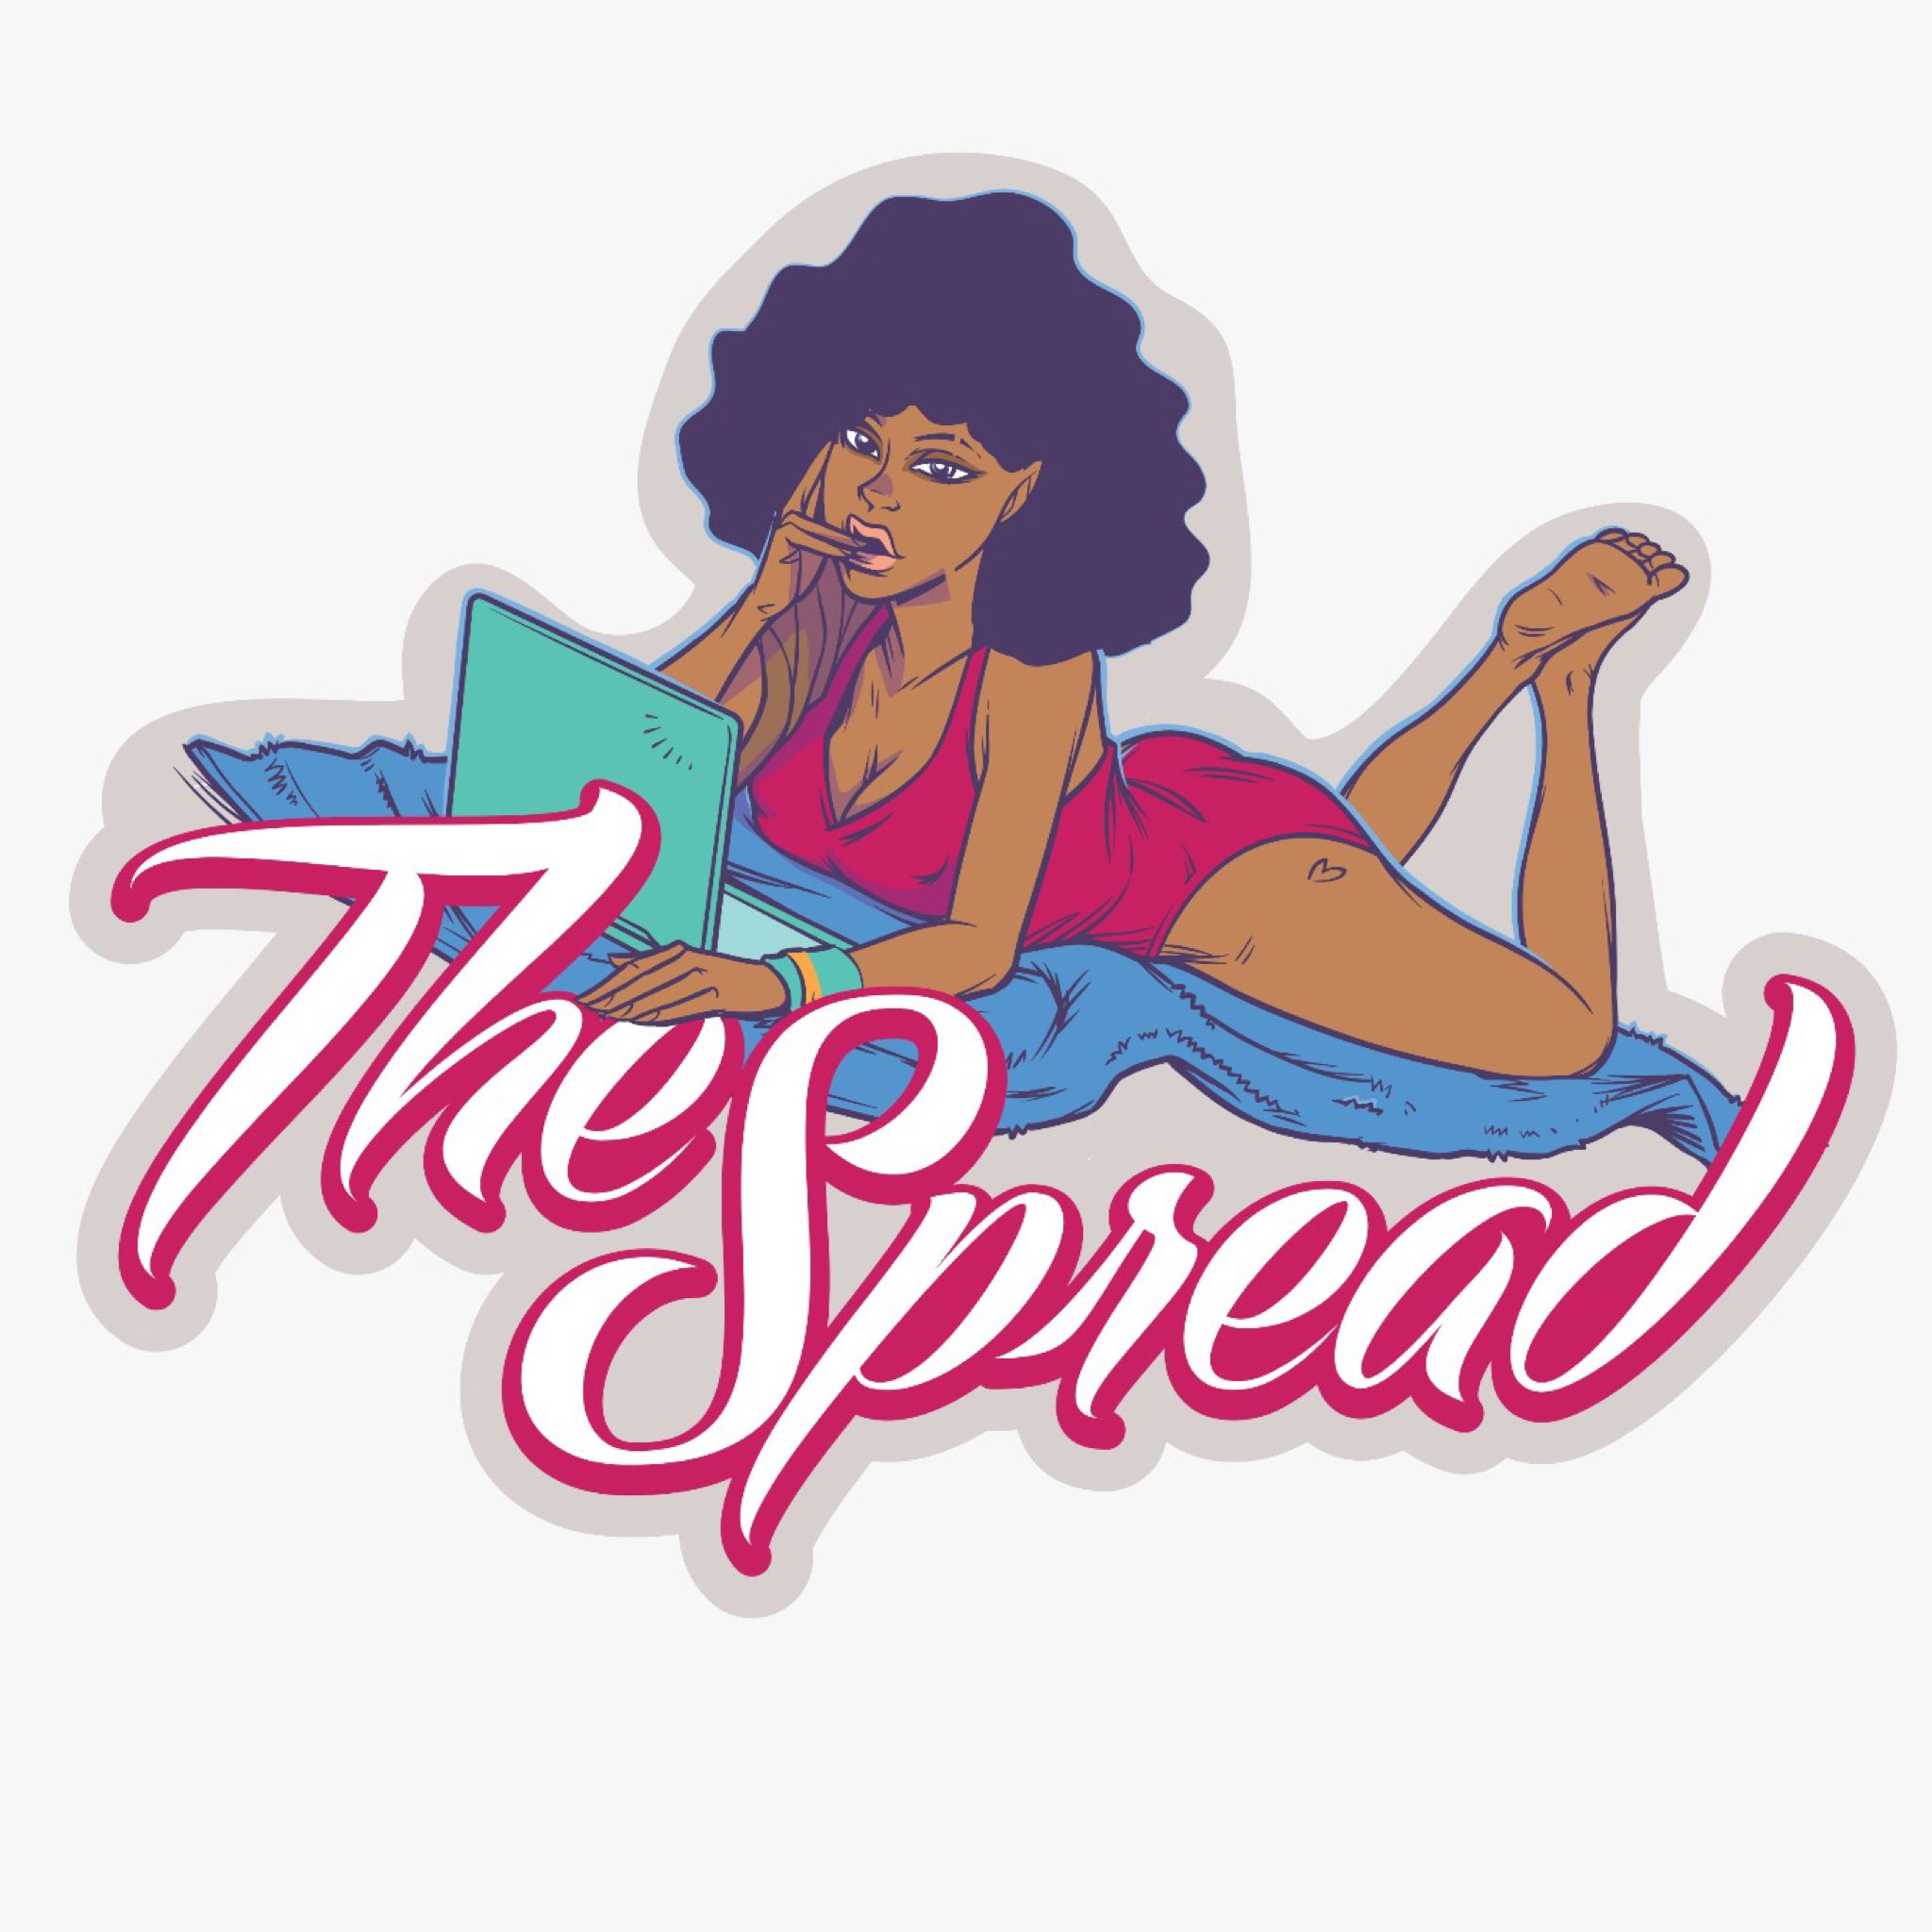 The spread - A sex positive podcast